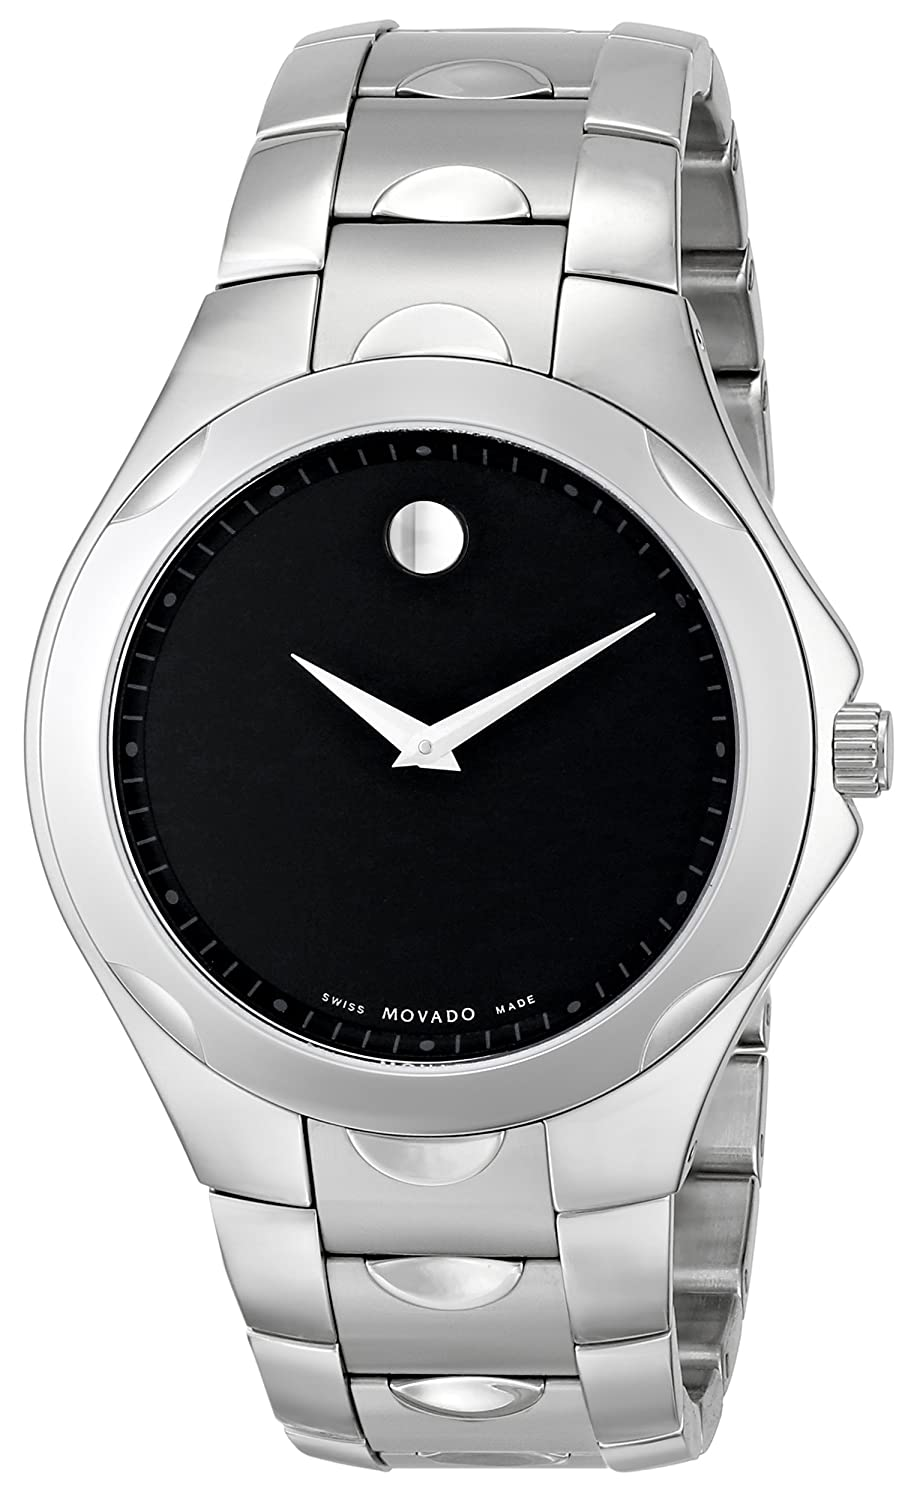 watch watches stainless luno youtube dial bracelet round silver review men steel s sport movado